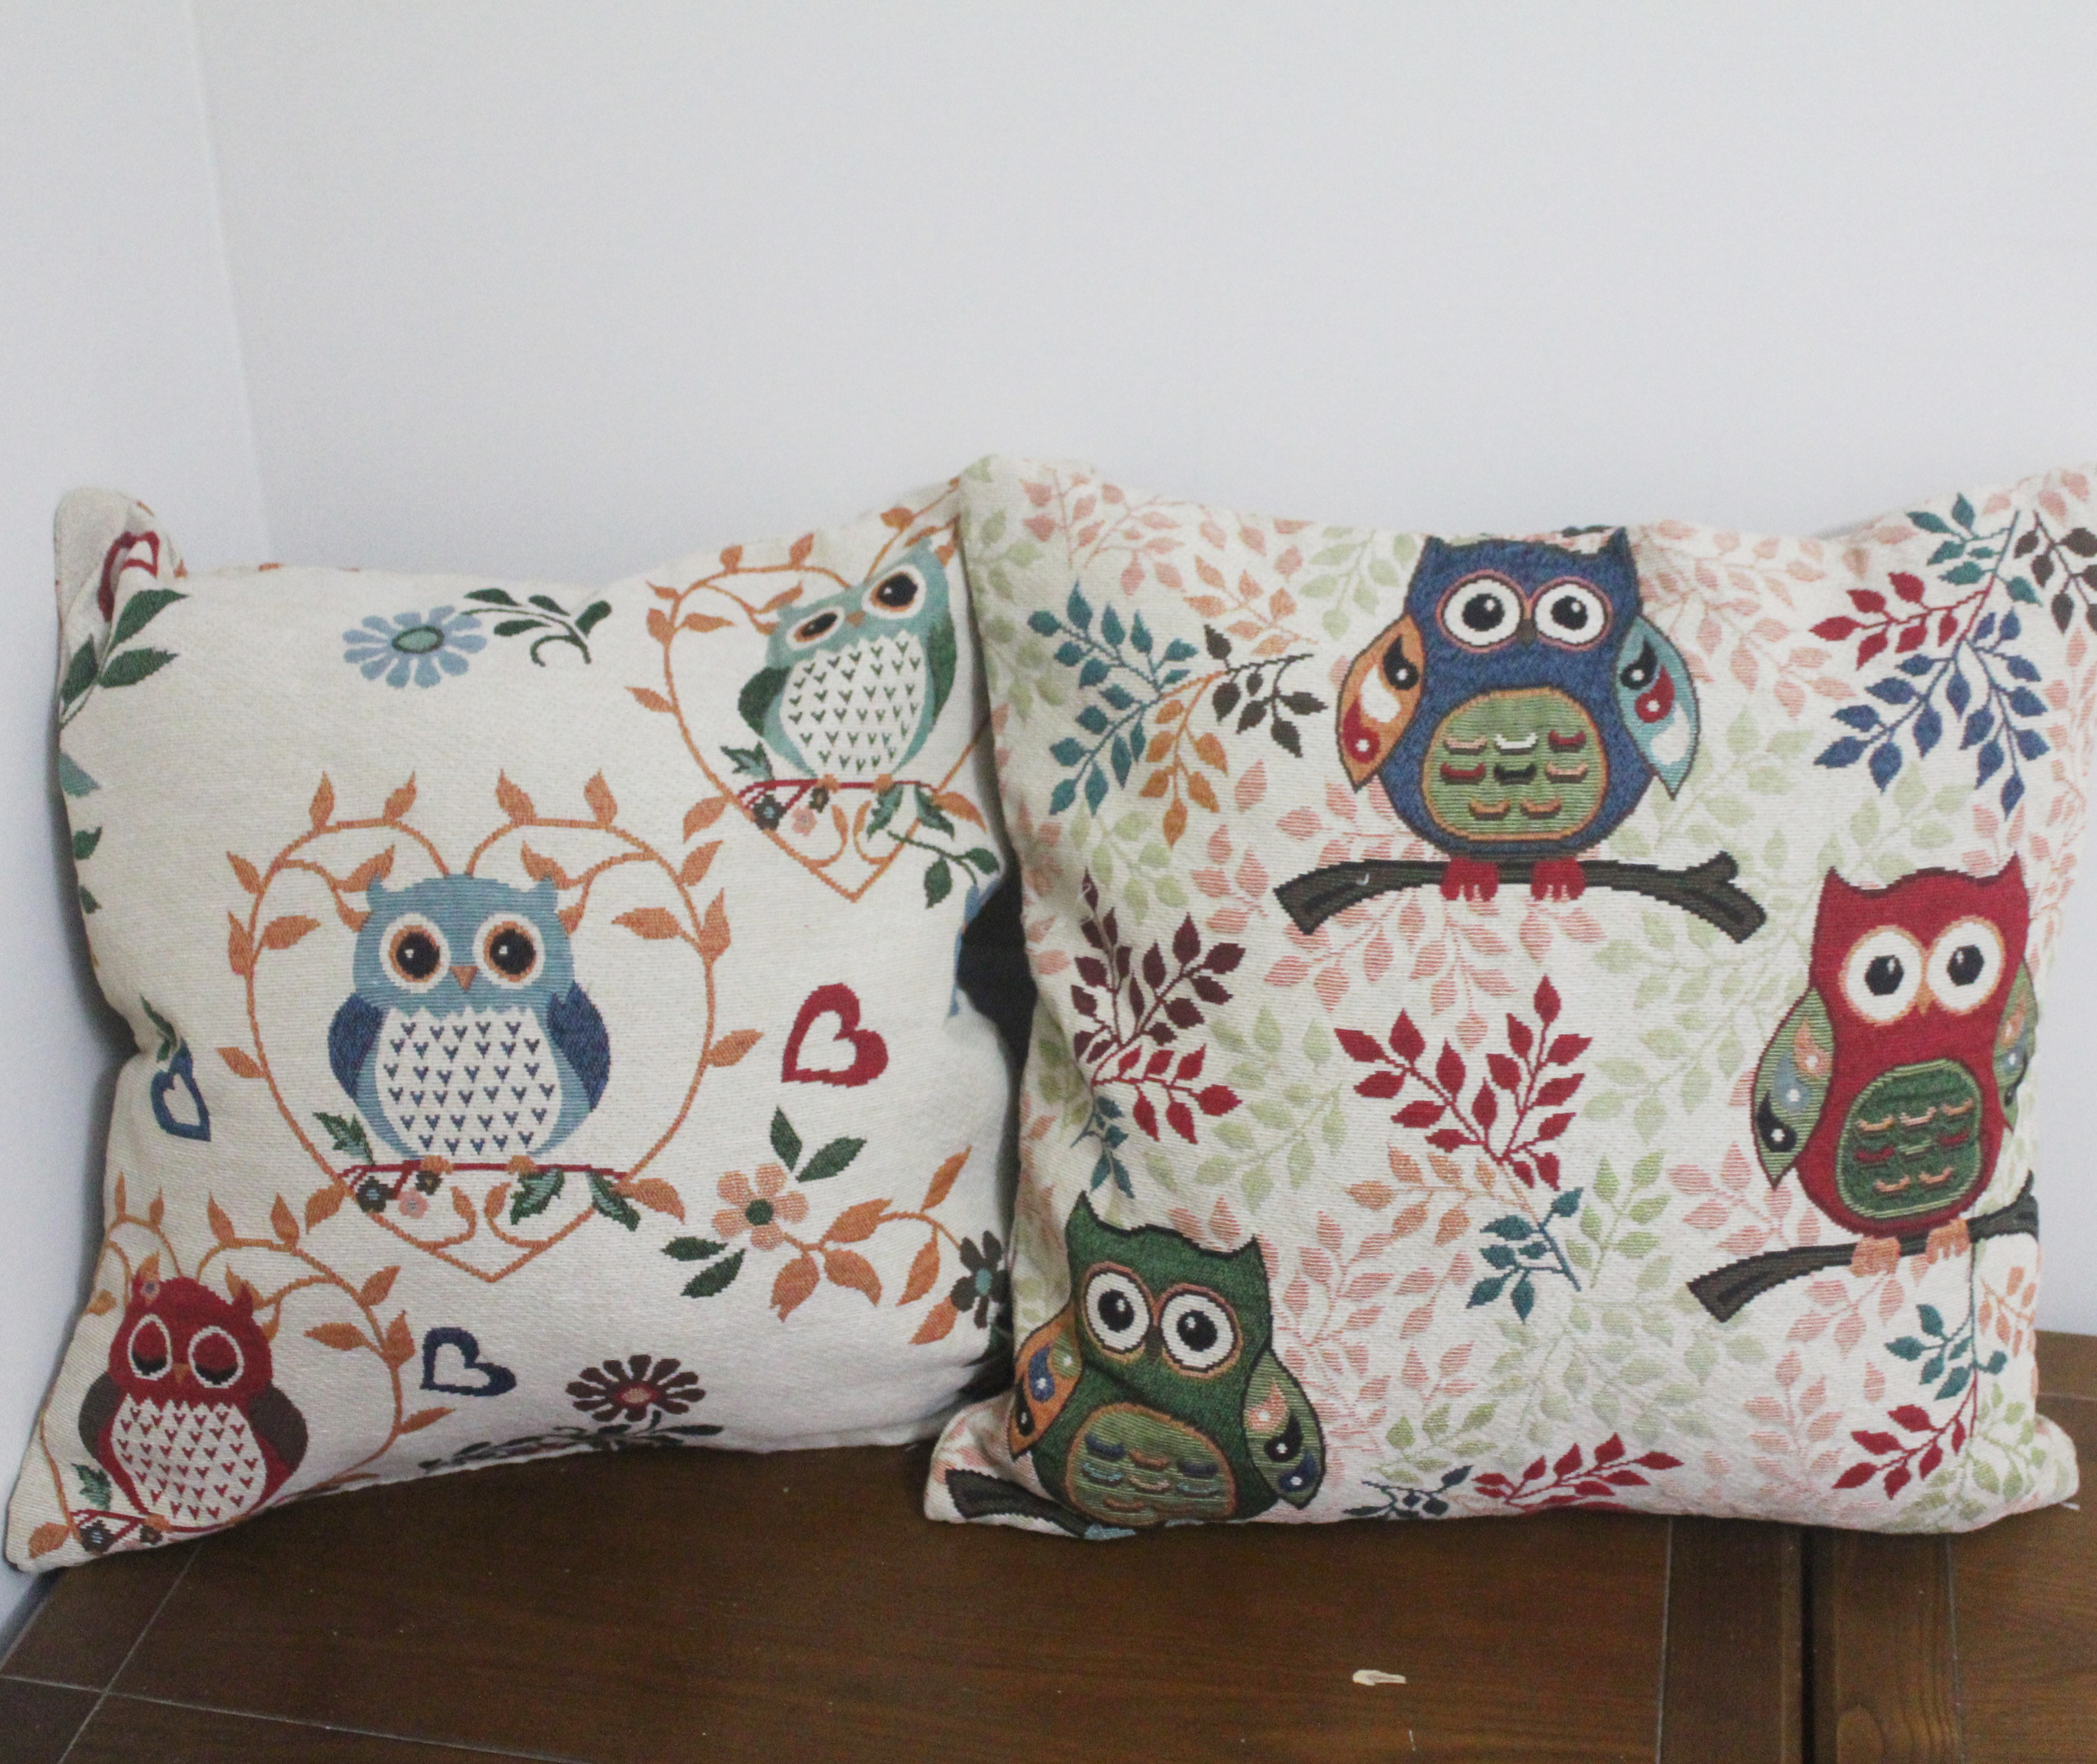 Owl Chair Us 9 22 29 Off Vintage Owl Decorative Throw Pillowcases Living Room Couch Seat Floor Chair Cushions Cover Outdoor Seat Pillow Case For Sofa In